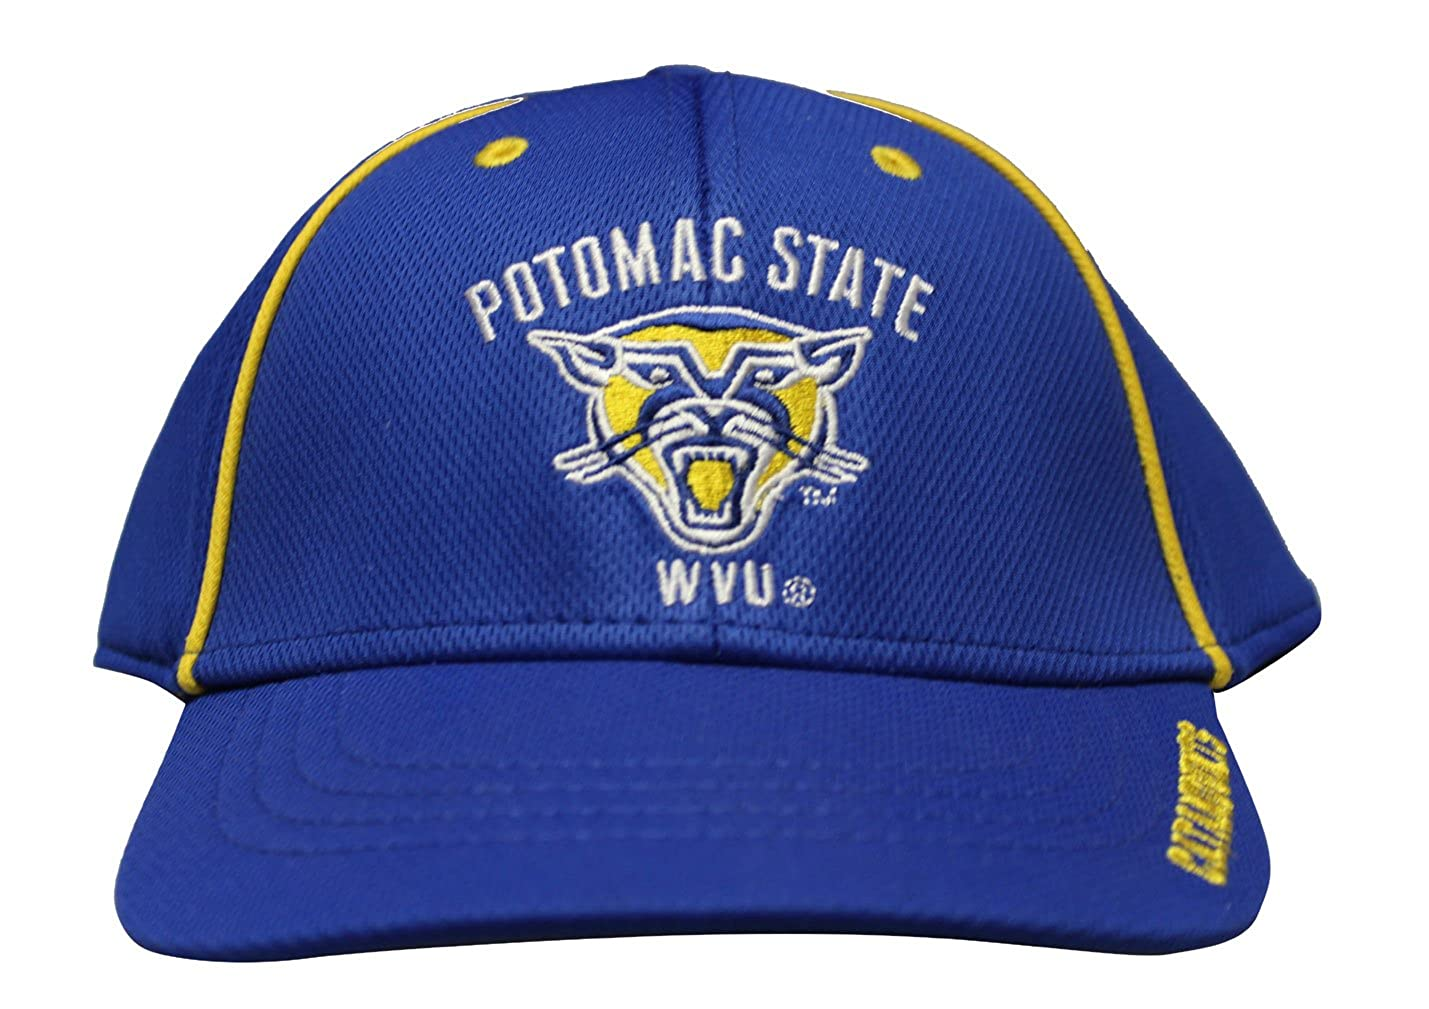 fb01a15851888 Rob sTees Potomac State College Of West Virginia University Knit  Unstructured Twill Cotton Baseball Hat Dad Cap at Amazon Men s Clothing  store